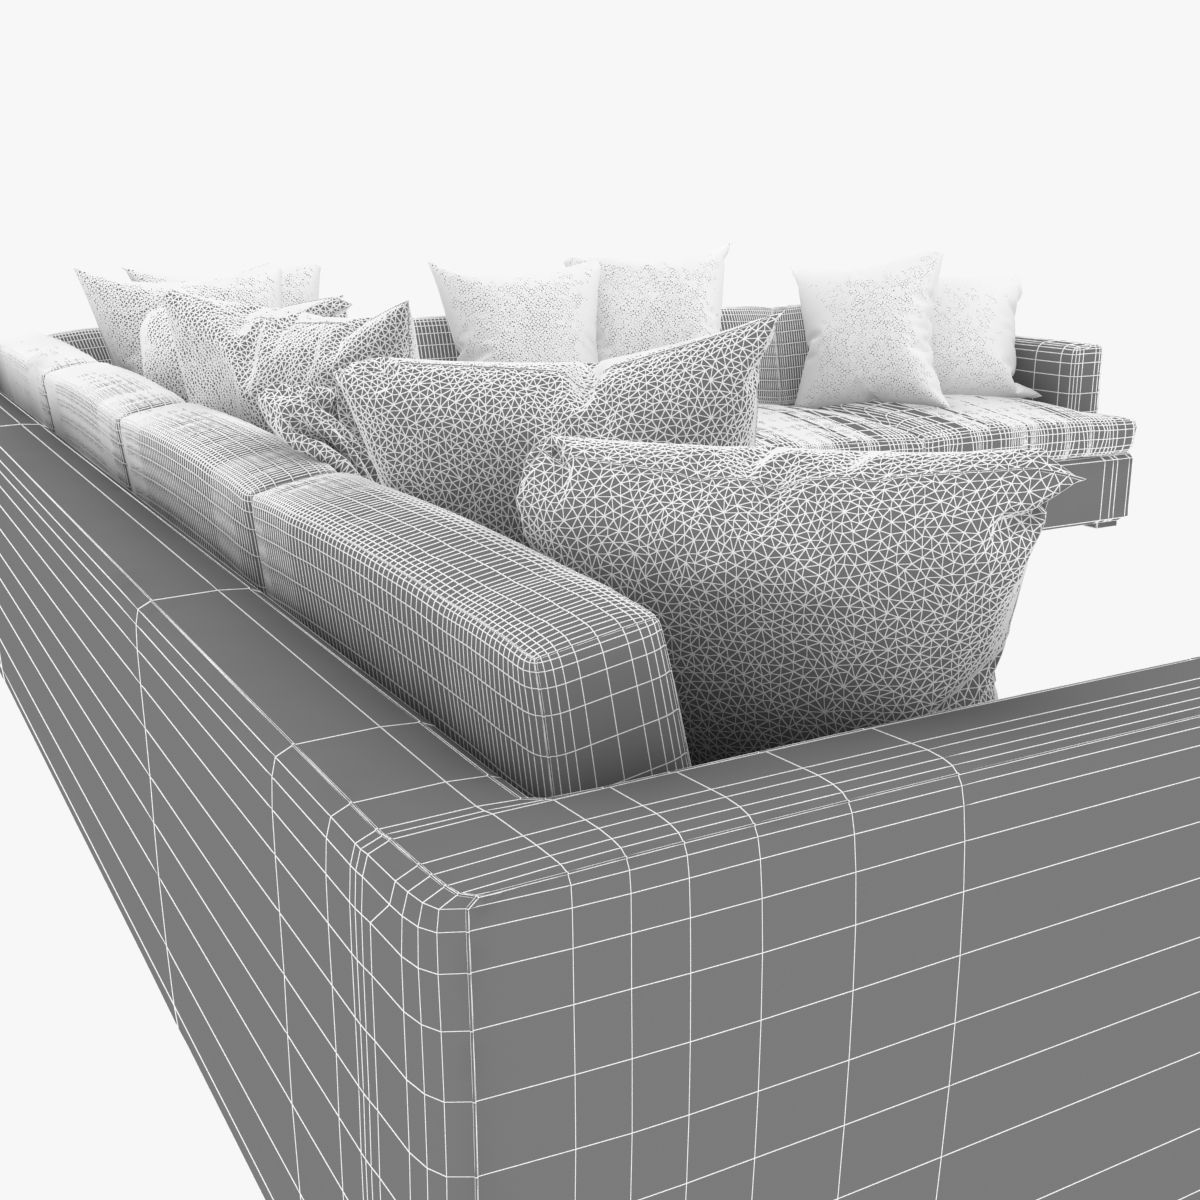 Great room sectional sofa with pillows 3d model max obj for Great room sectional